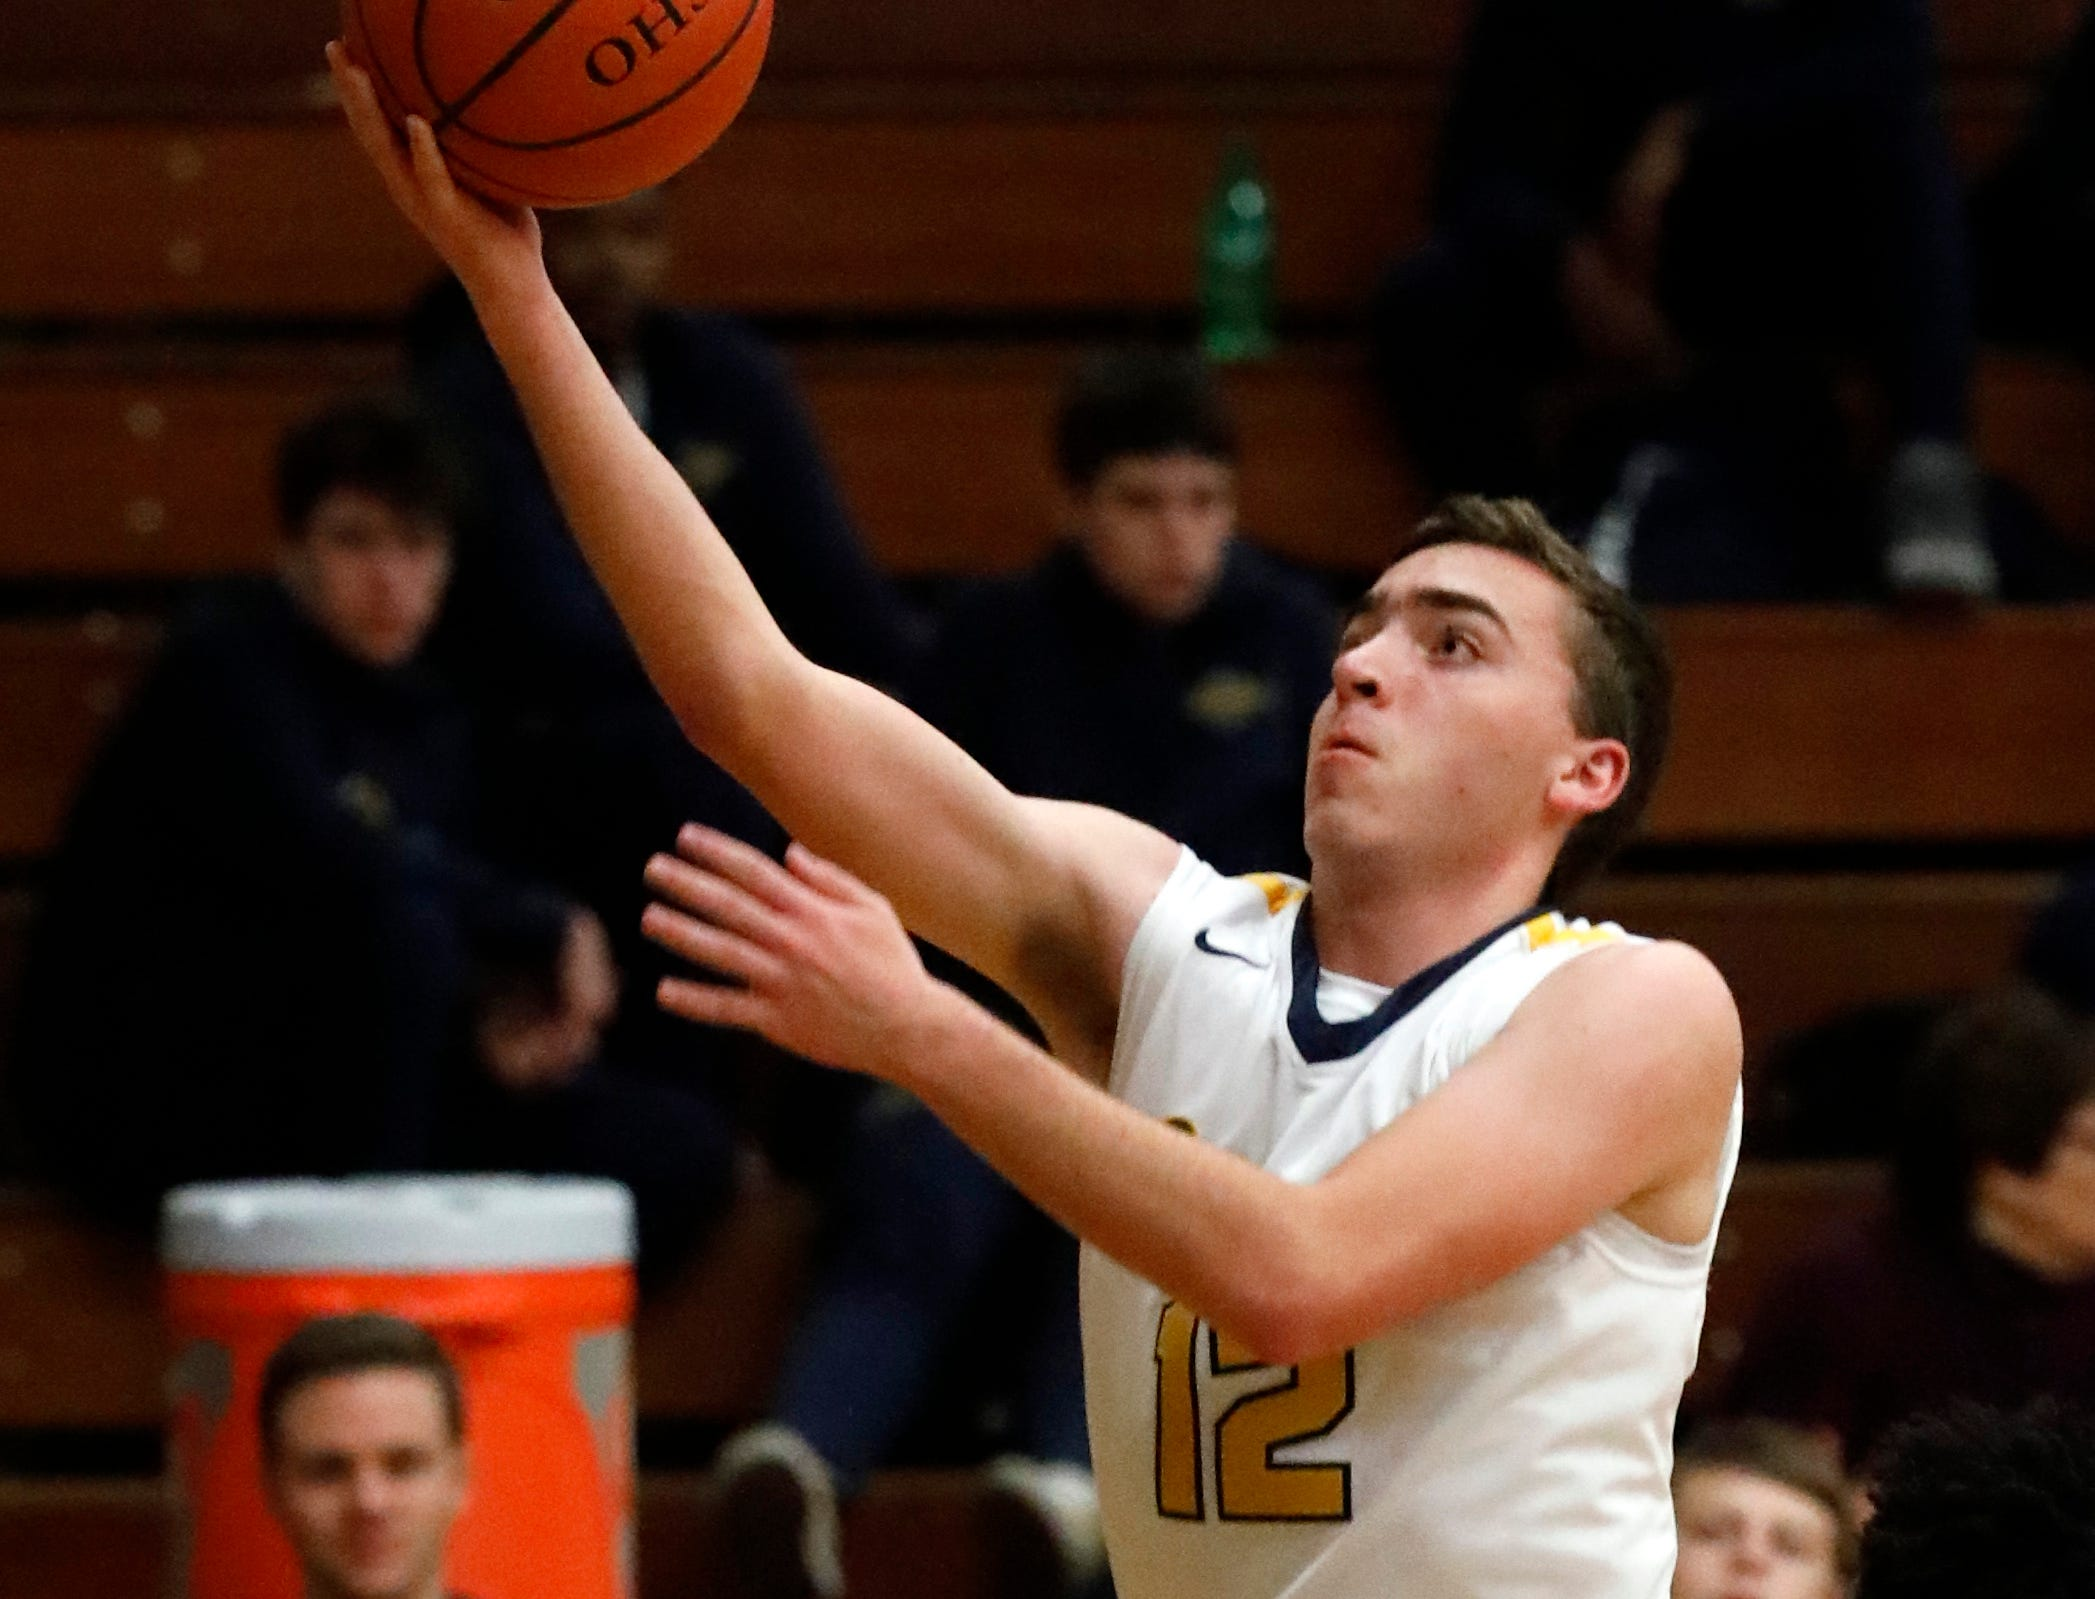 Lancaster's Brian Shupp goes in for a layup during Tuesday night's game, Feb. 5, 2019, against Groveport Madison at Lancaster High School in Lancaster. The Golden Gales lost the game 47-40.